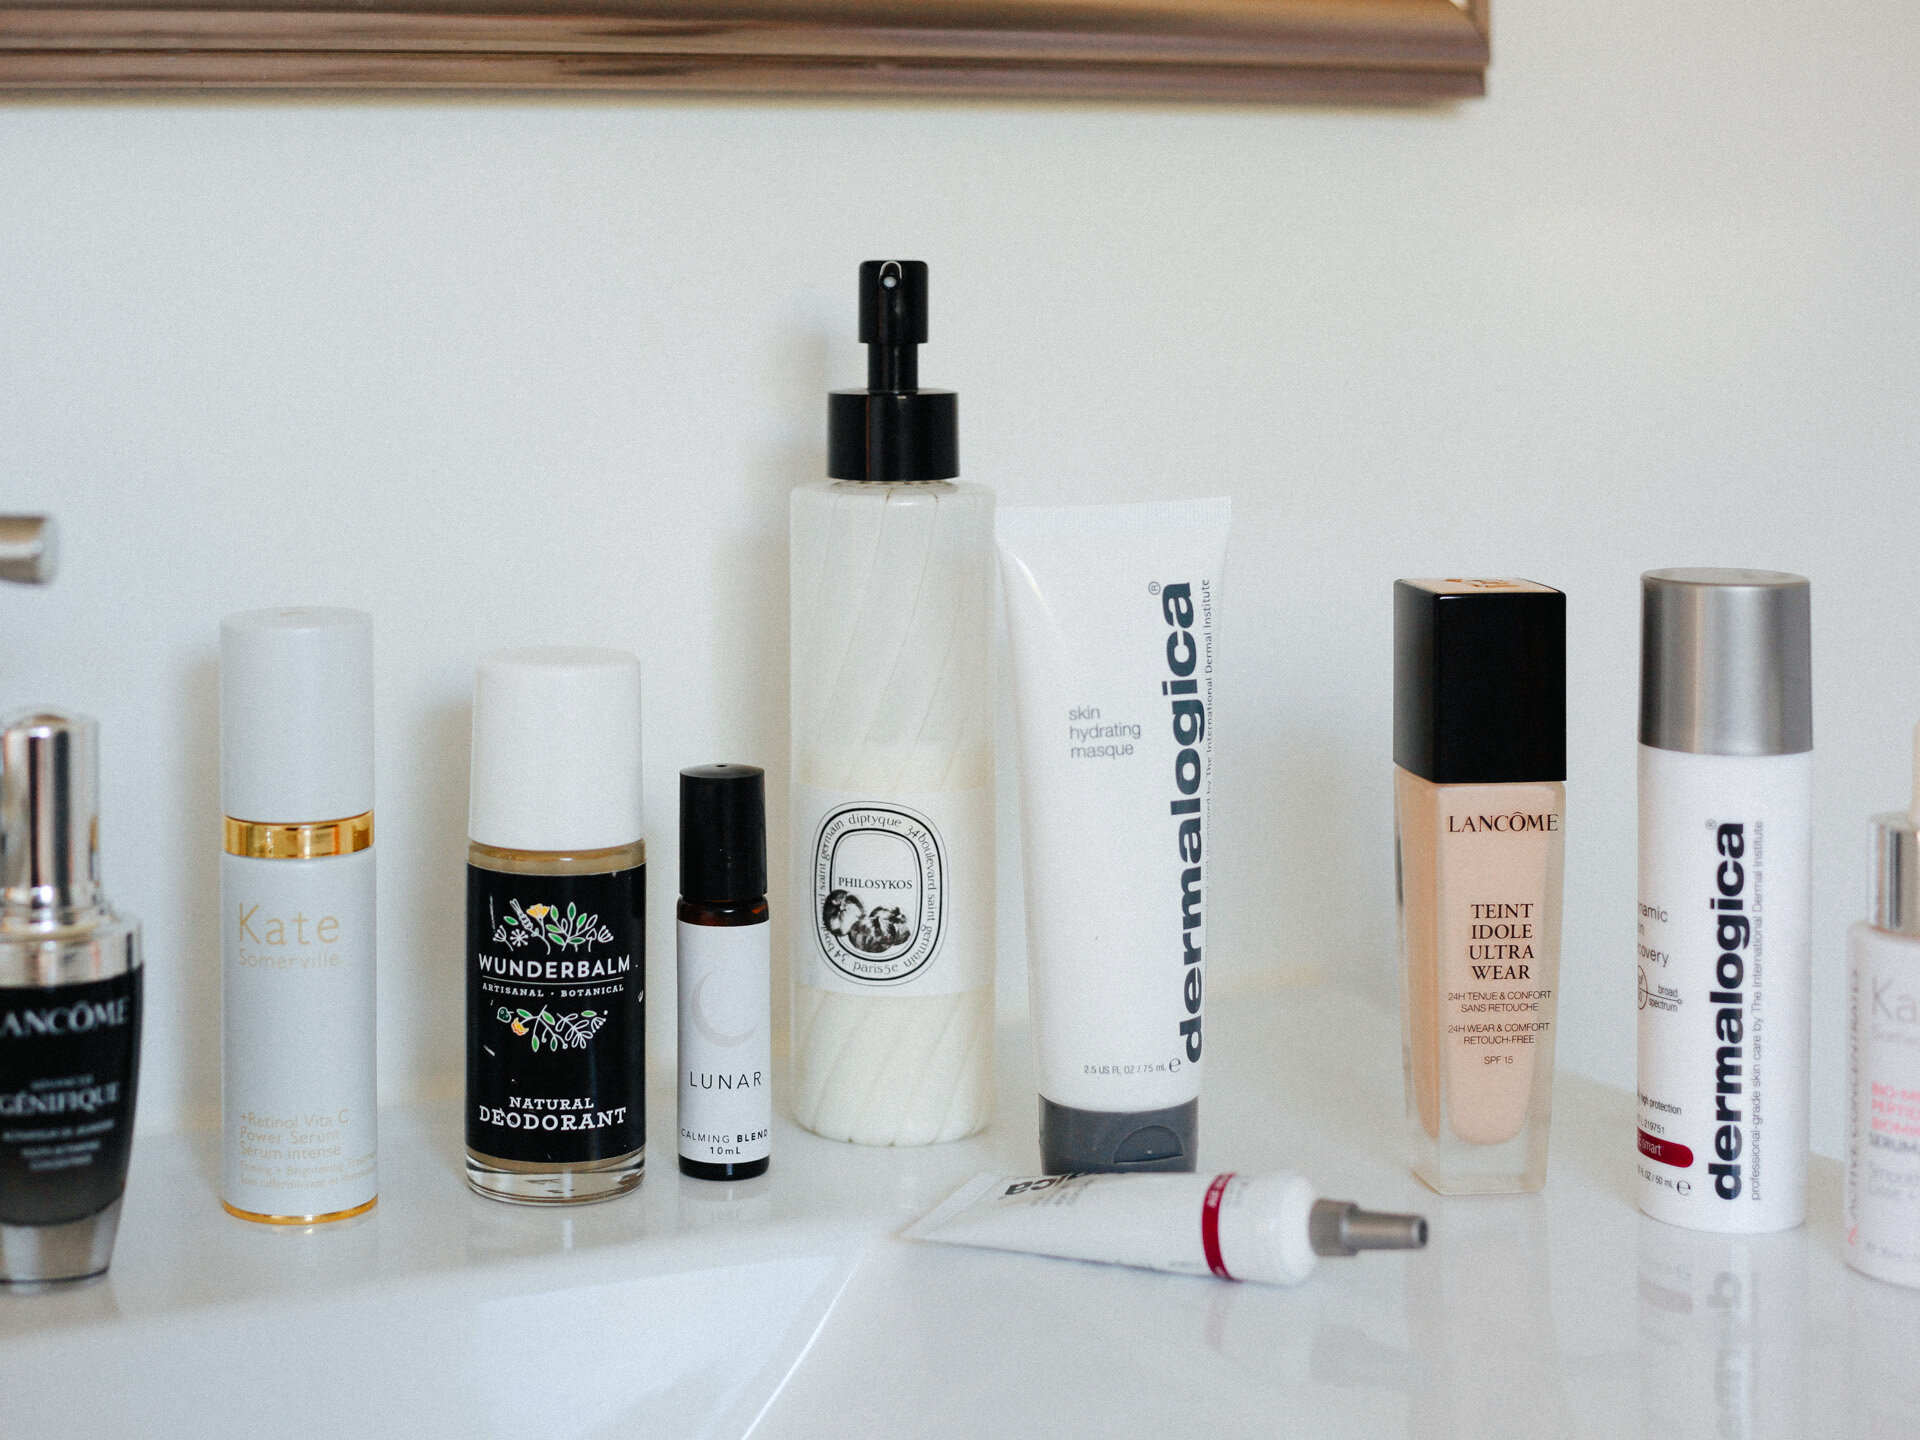 The_Residents_Lucy_Revill_Skincare_Lancome_Dermalogica-4.jpg